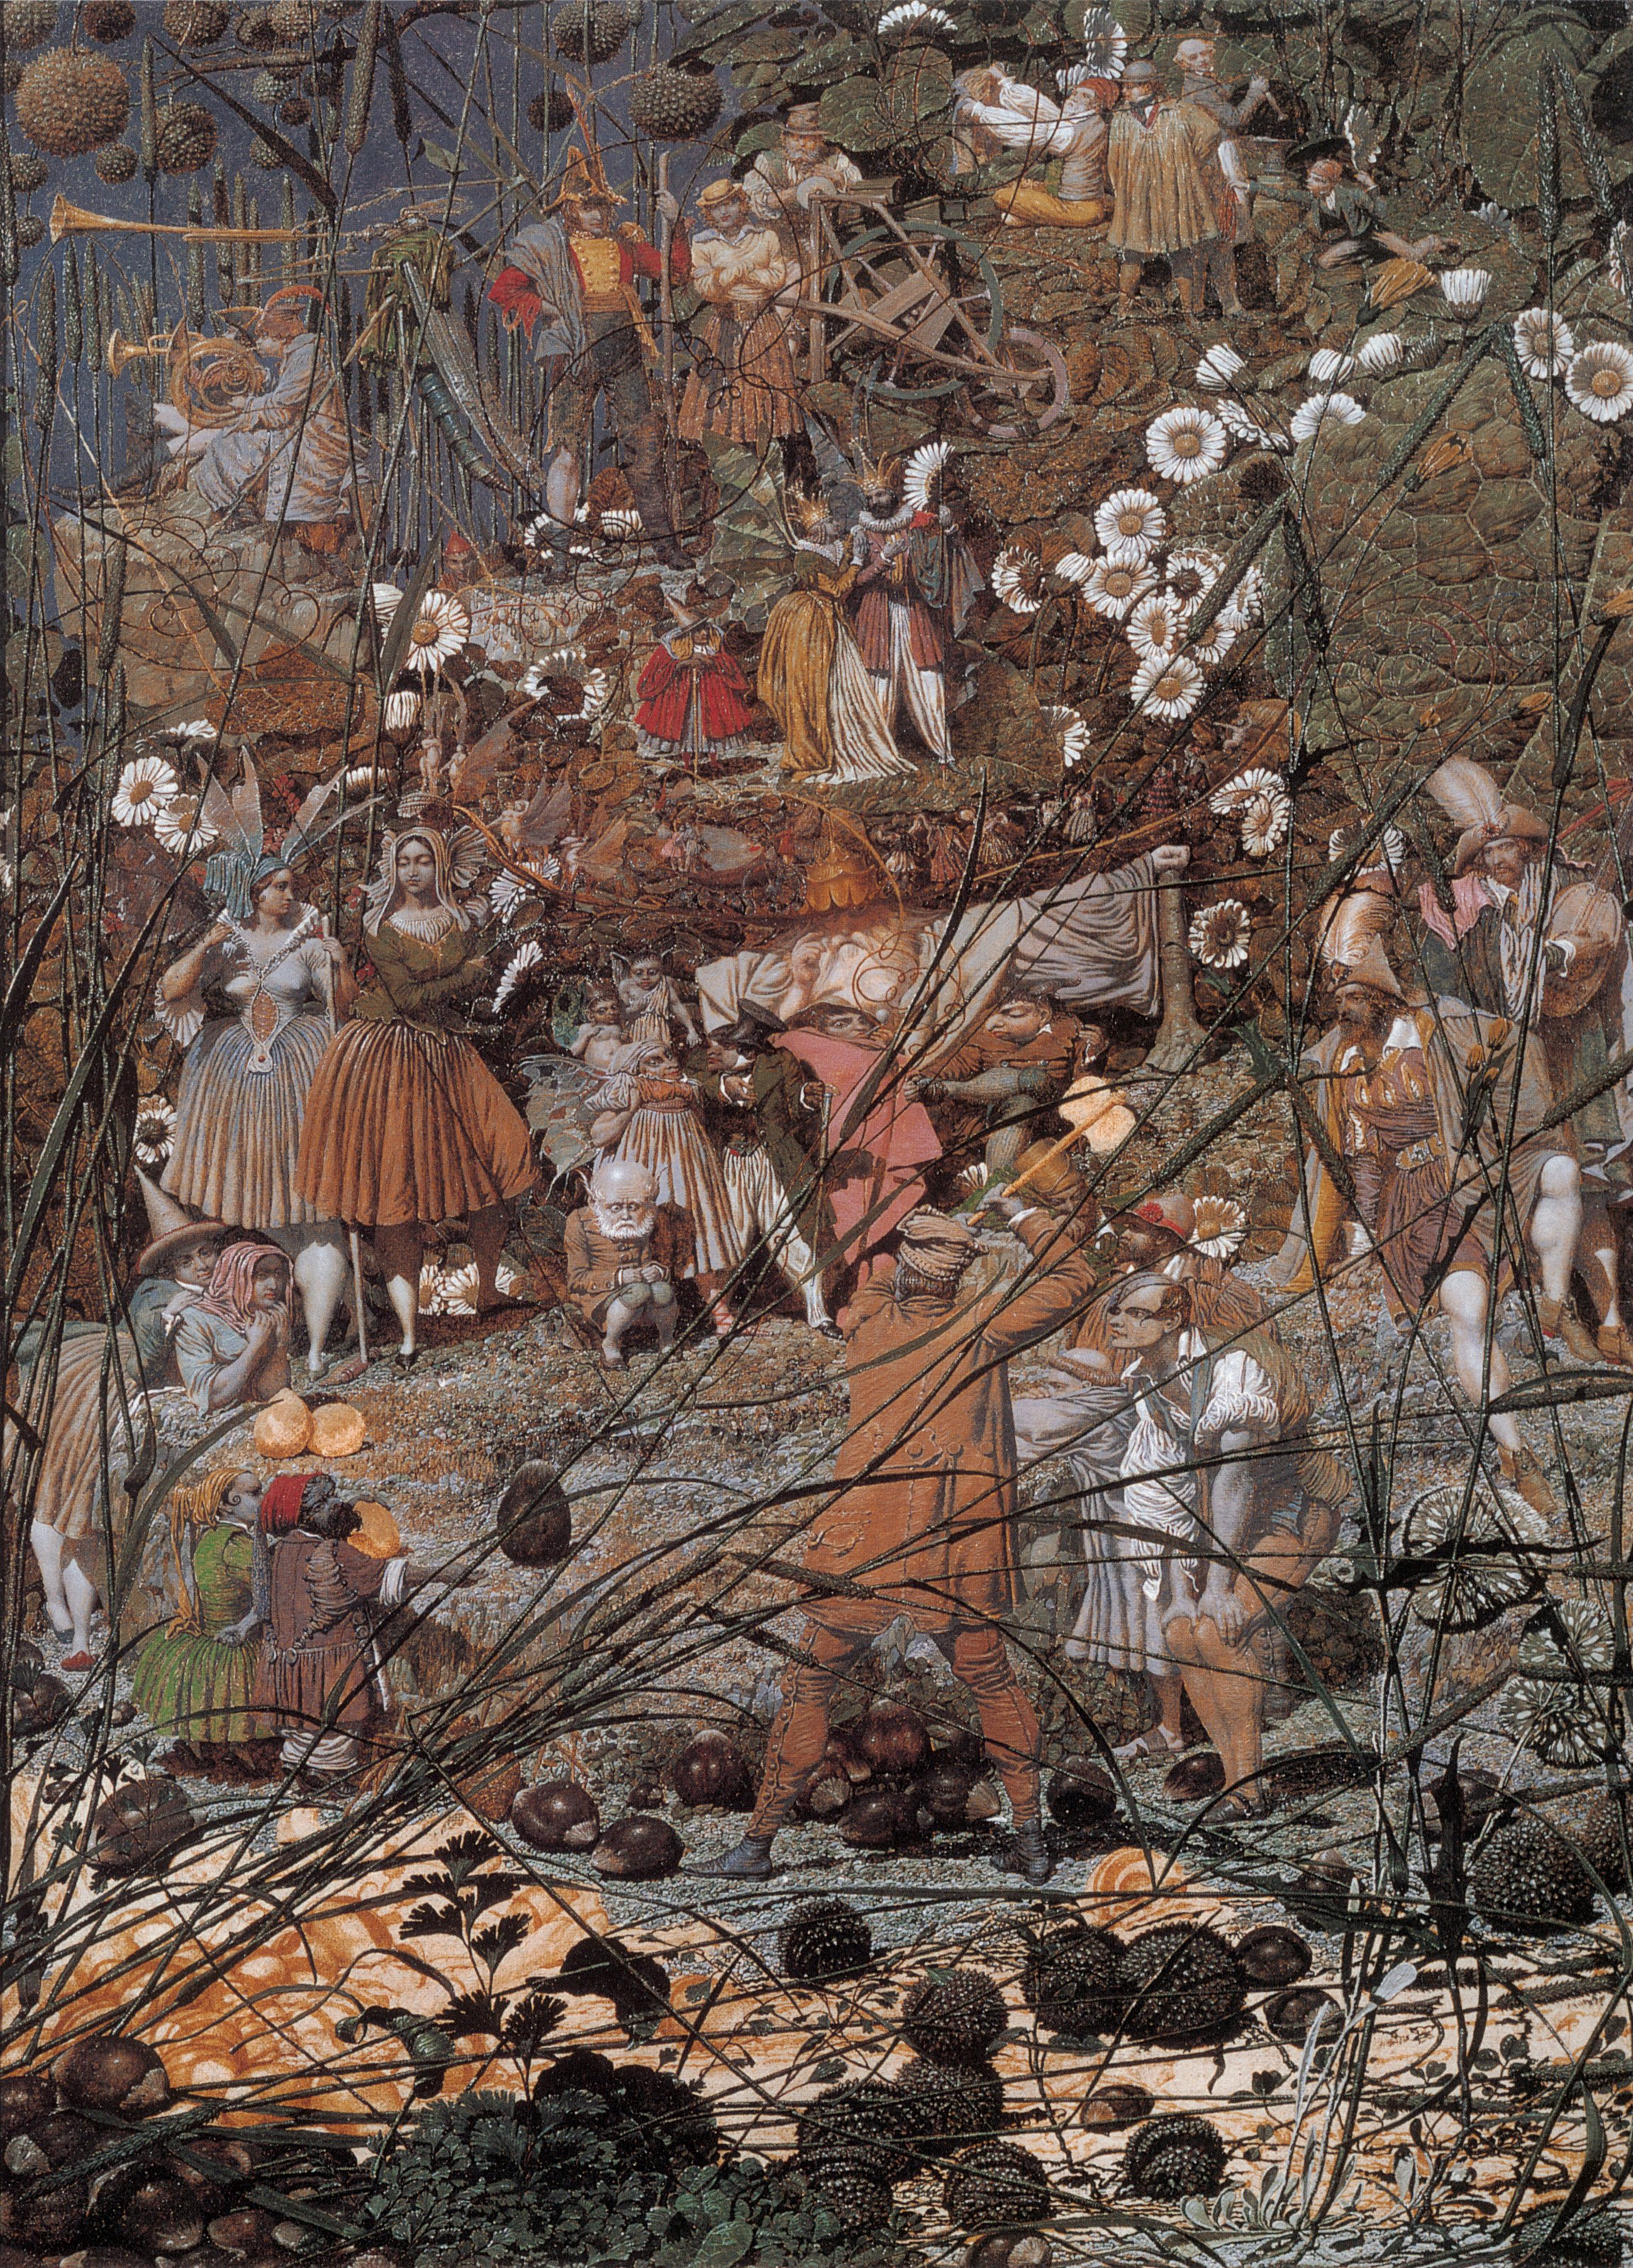 Richard Dadd, The Fairy Feller's Masterstroke 1858-64